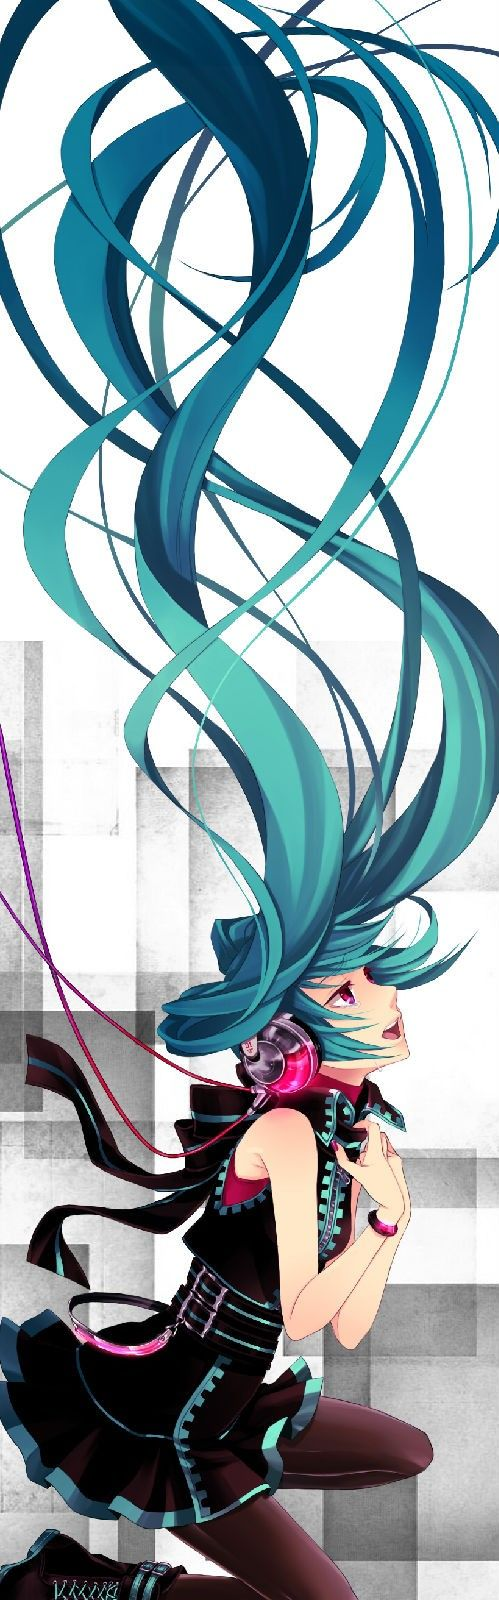 Hatsune Miku Not An Actual Anime But Ill Just Put Her Here